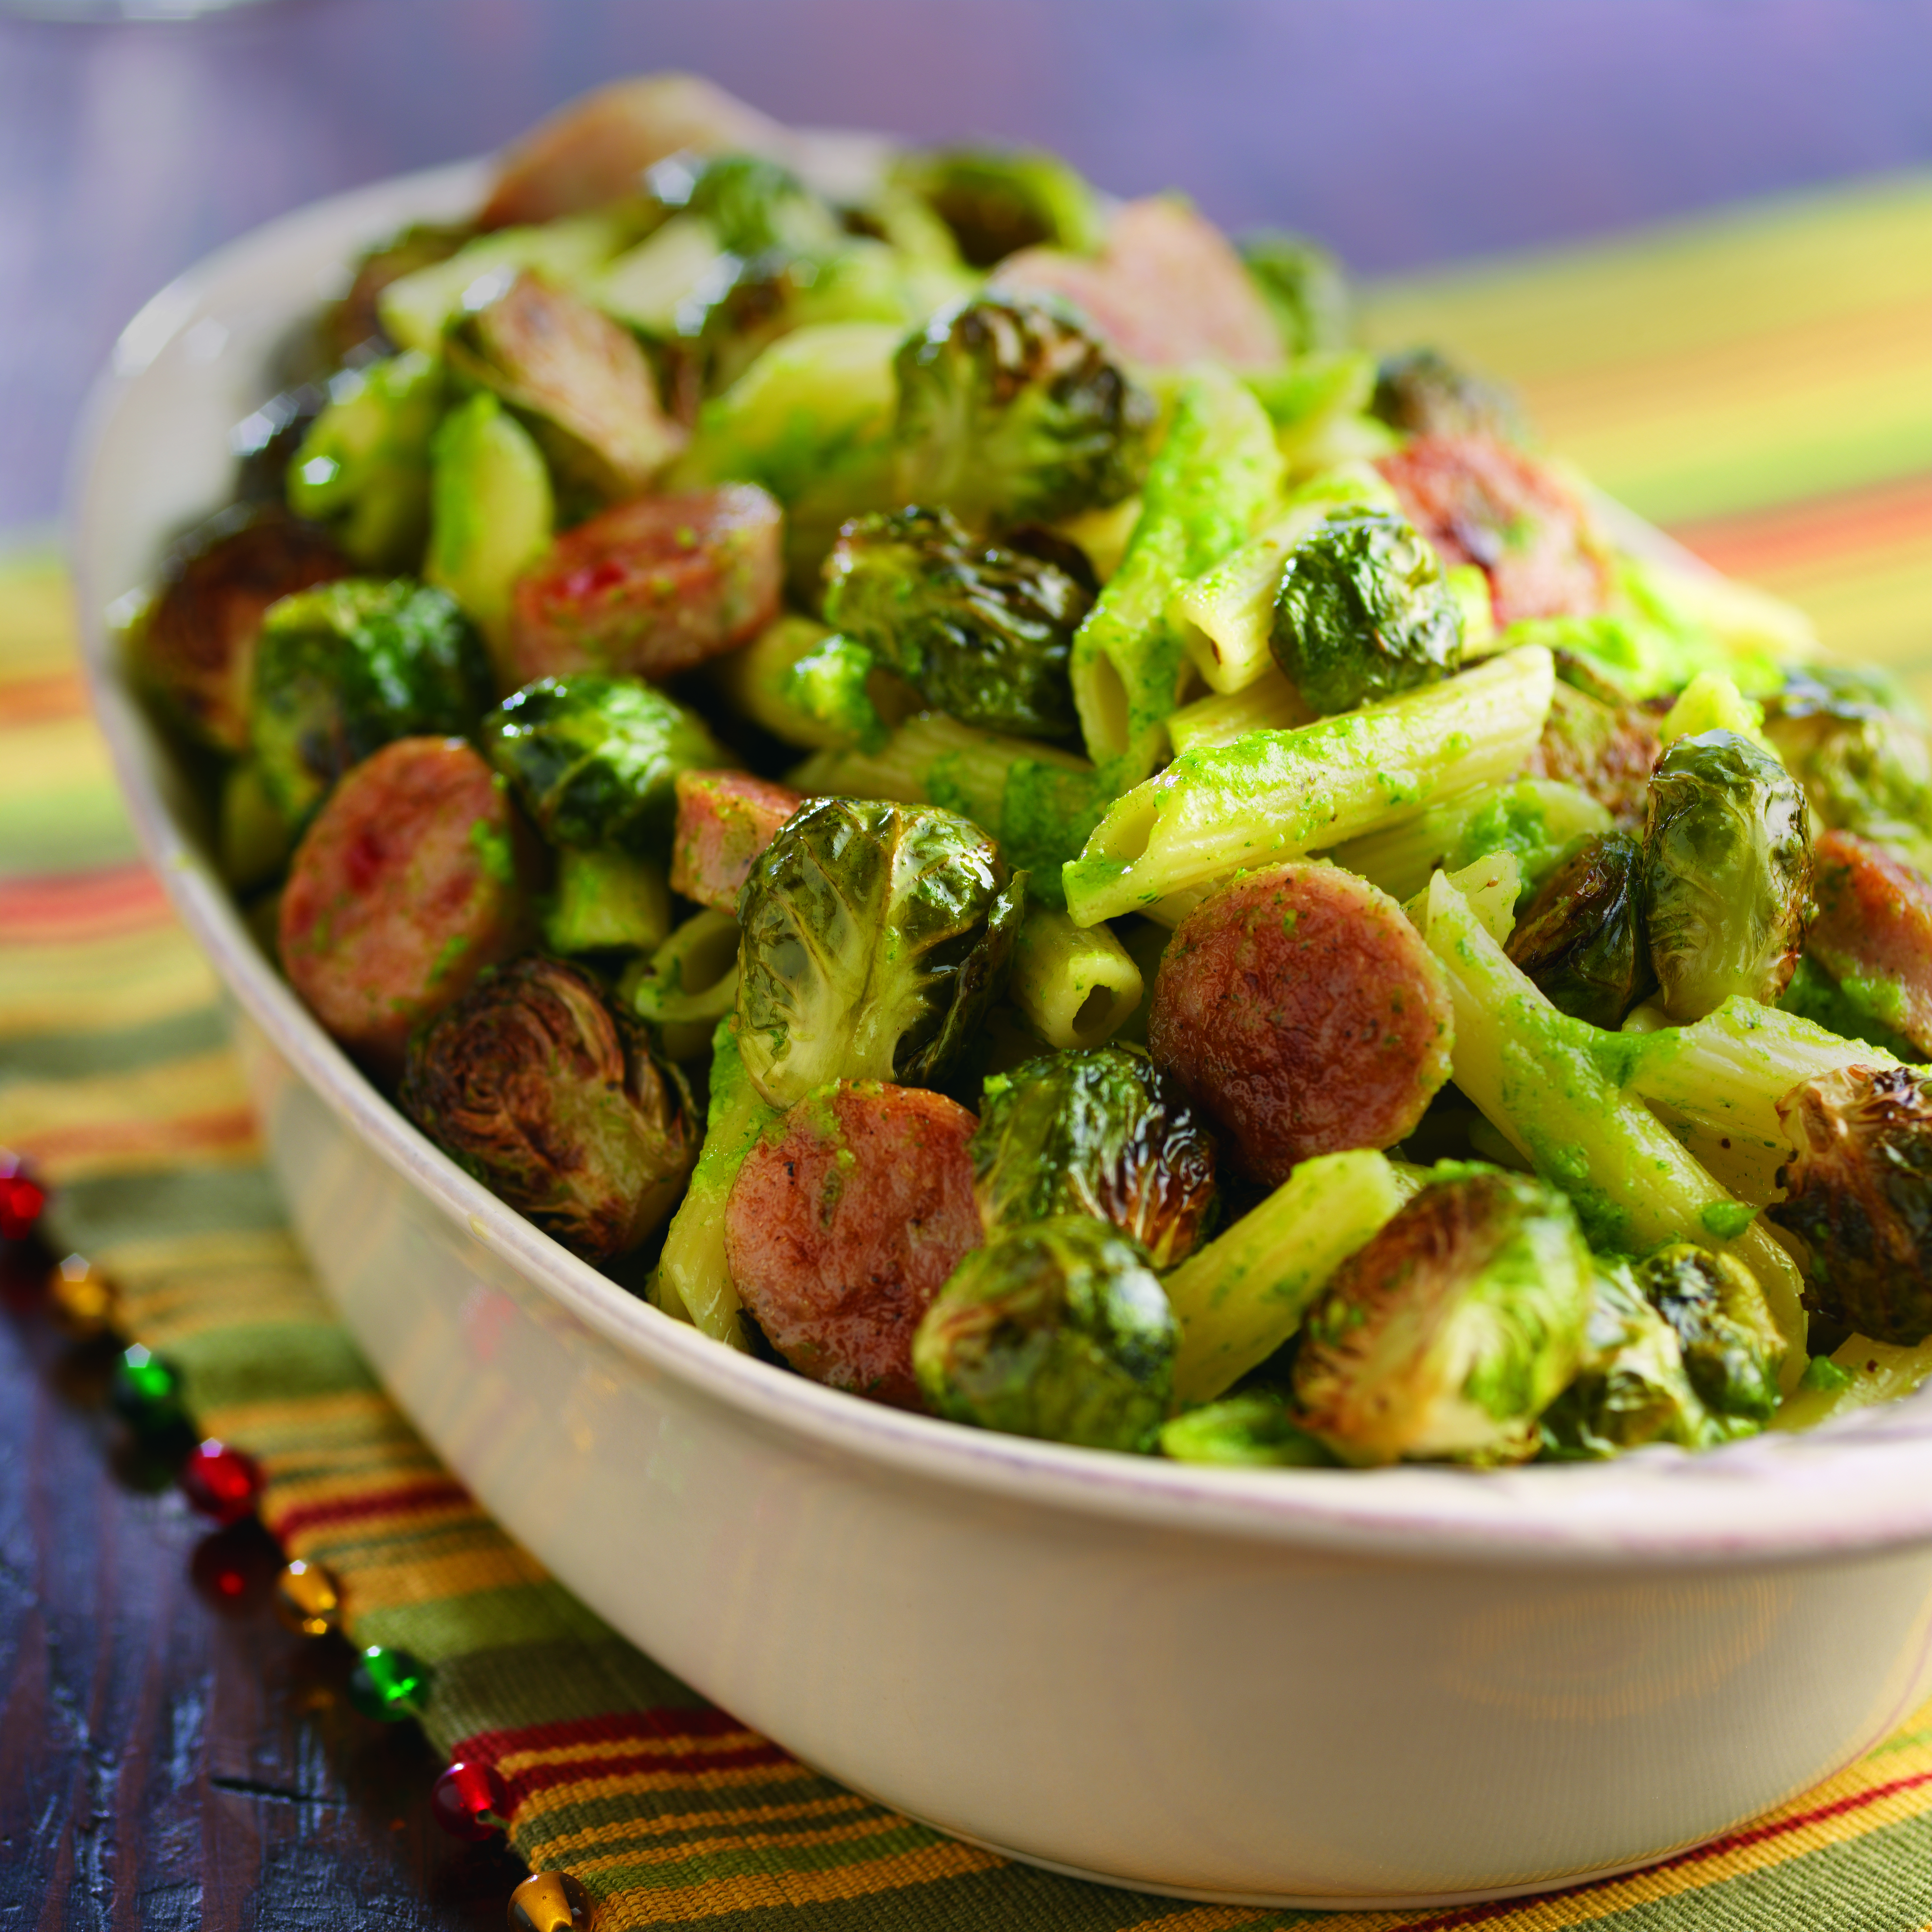 Pesto Pasta with Sweet Italian Sausage and Roasted Brussels Sprouts